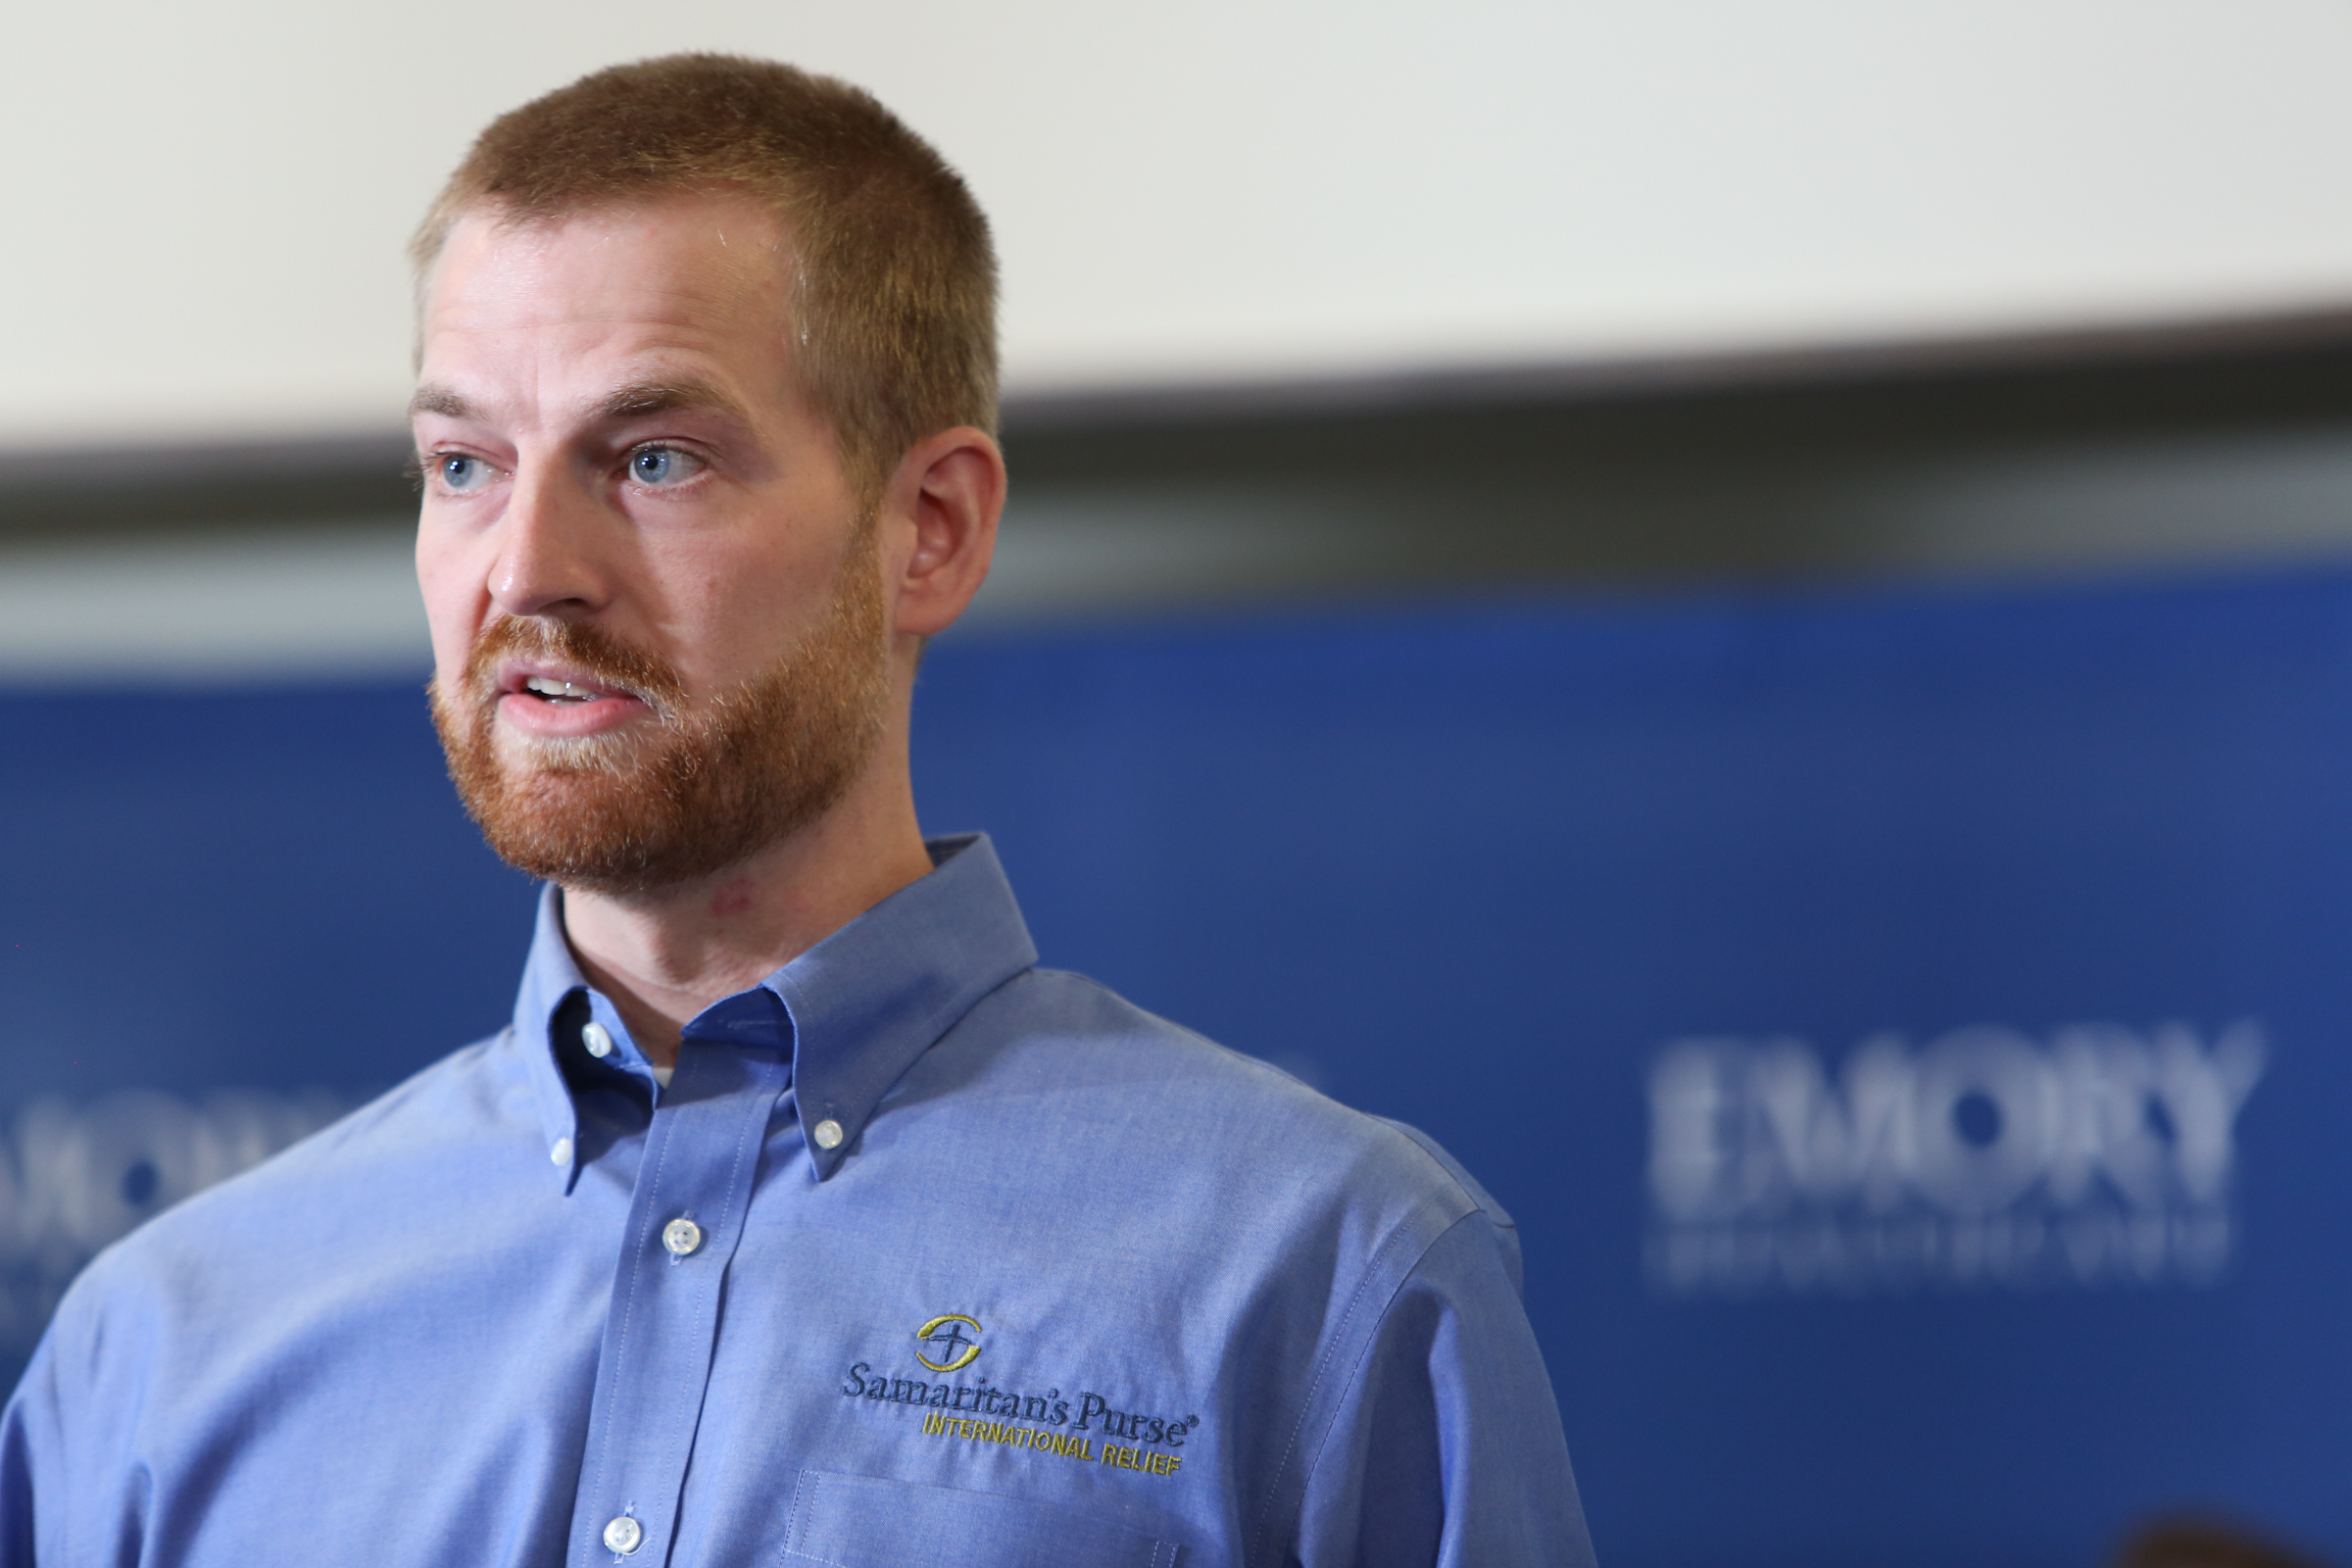 Dr. Kent Brantly speaks during a press conference announcing his release from Emory Hospital on August 21, 2014 in Atlanta, Georgia. Dr. Brantly and another patient, Nancy Writebol, were released from Emory Hospital after receiving treatment for Ebola that they both contracted while working as medical missionaries in Liberia.